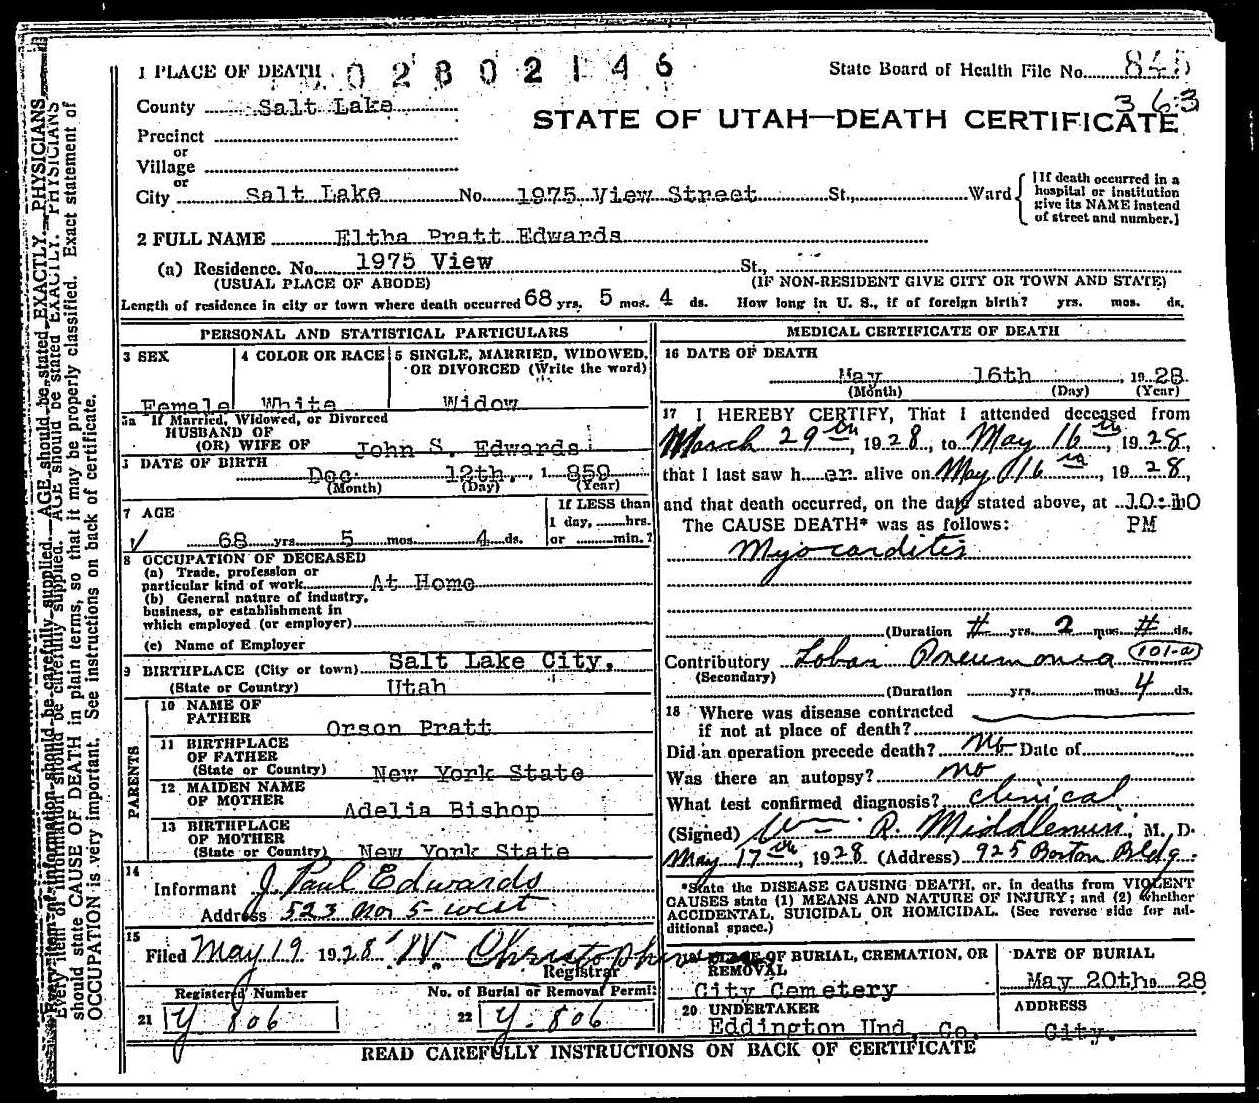 Eltha pratt edwards death certificate death certificate of eltha pratt edwards 1betcityfo Choice Image